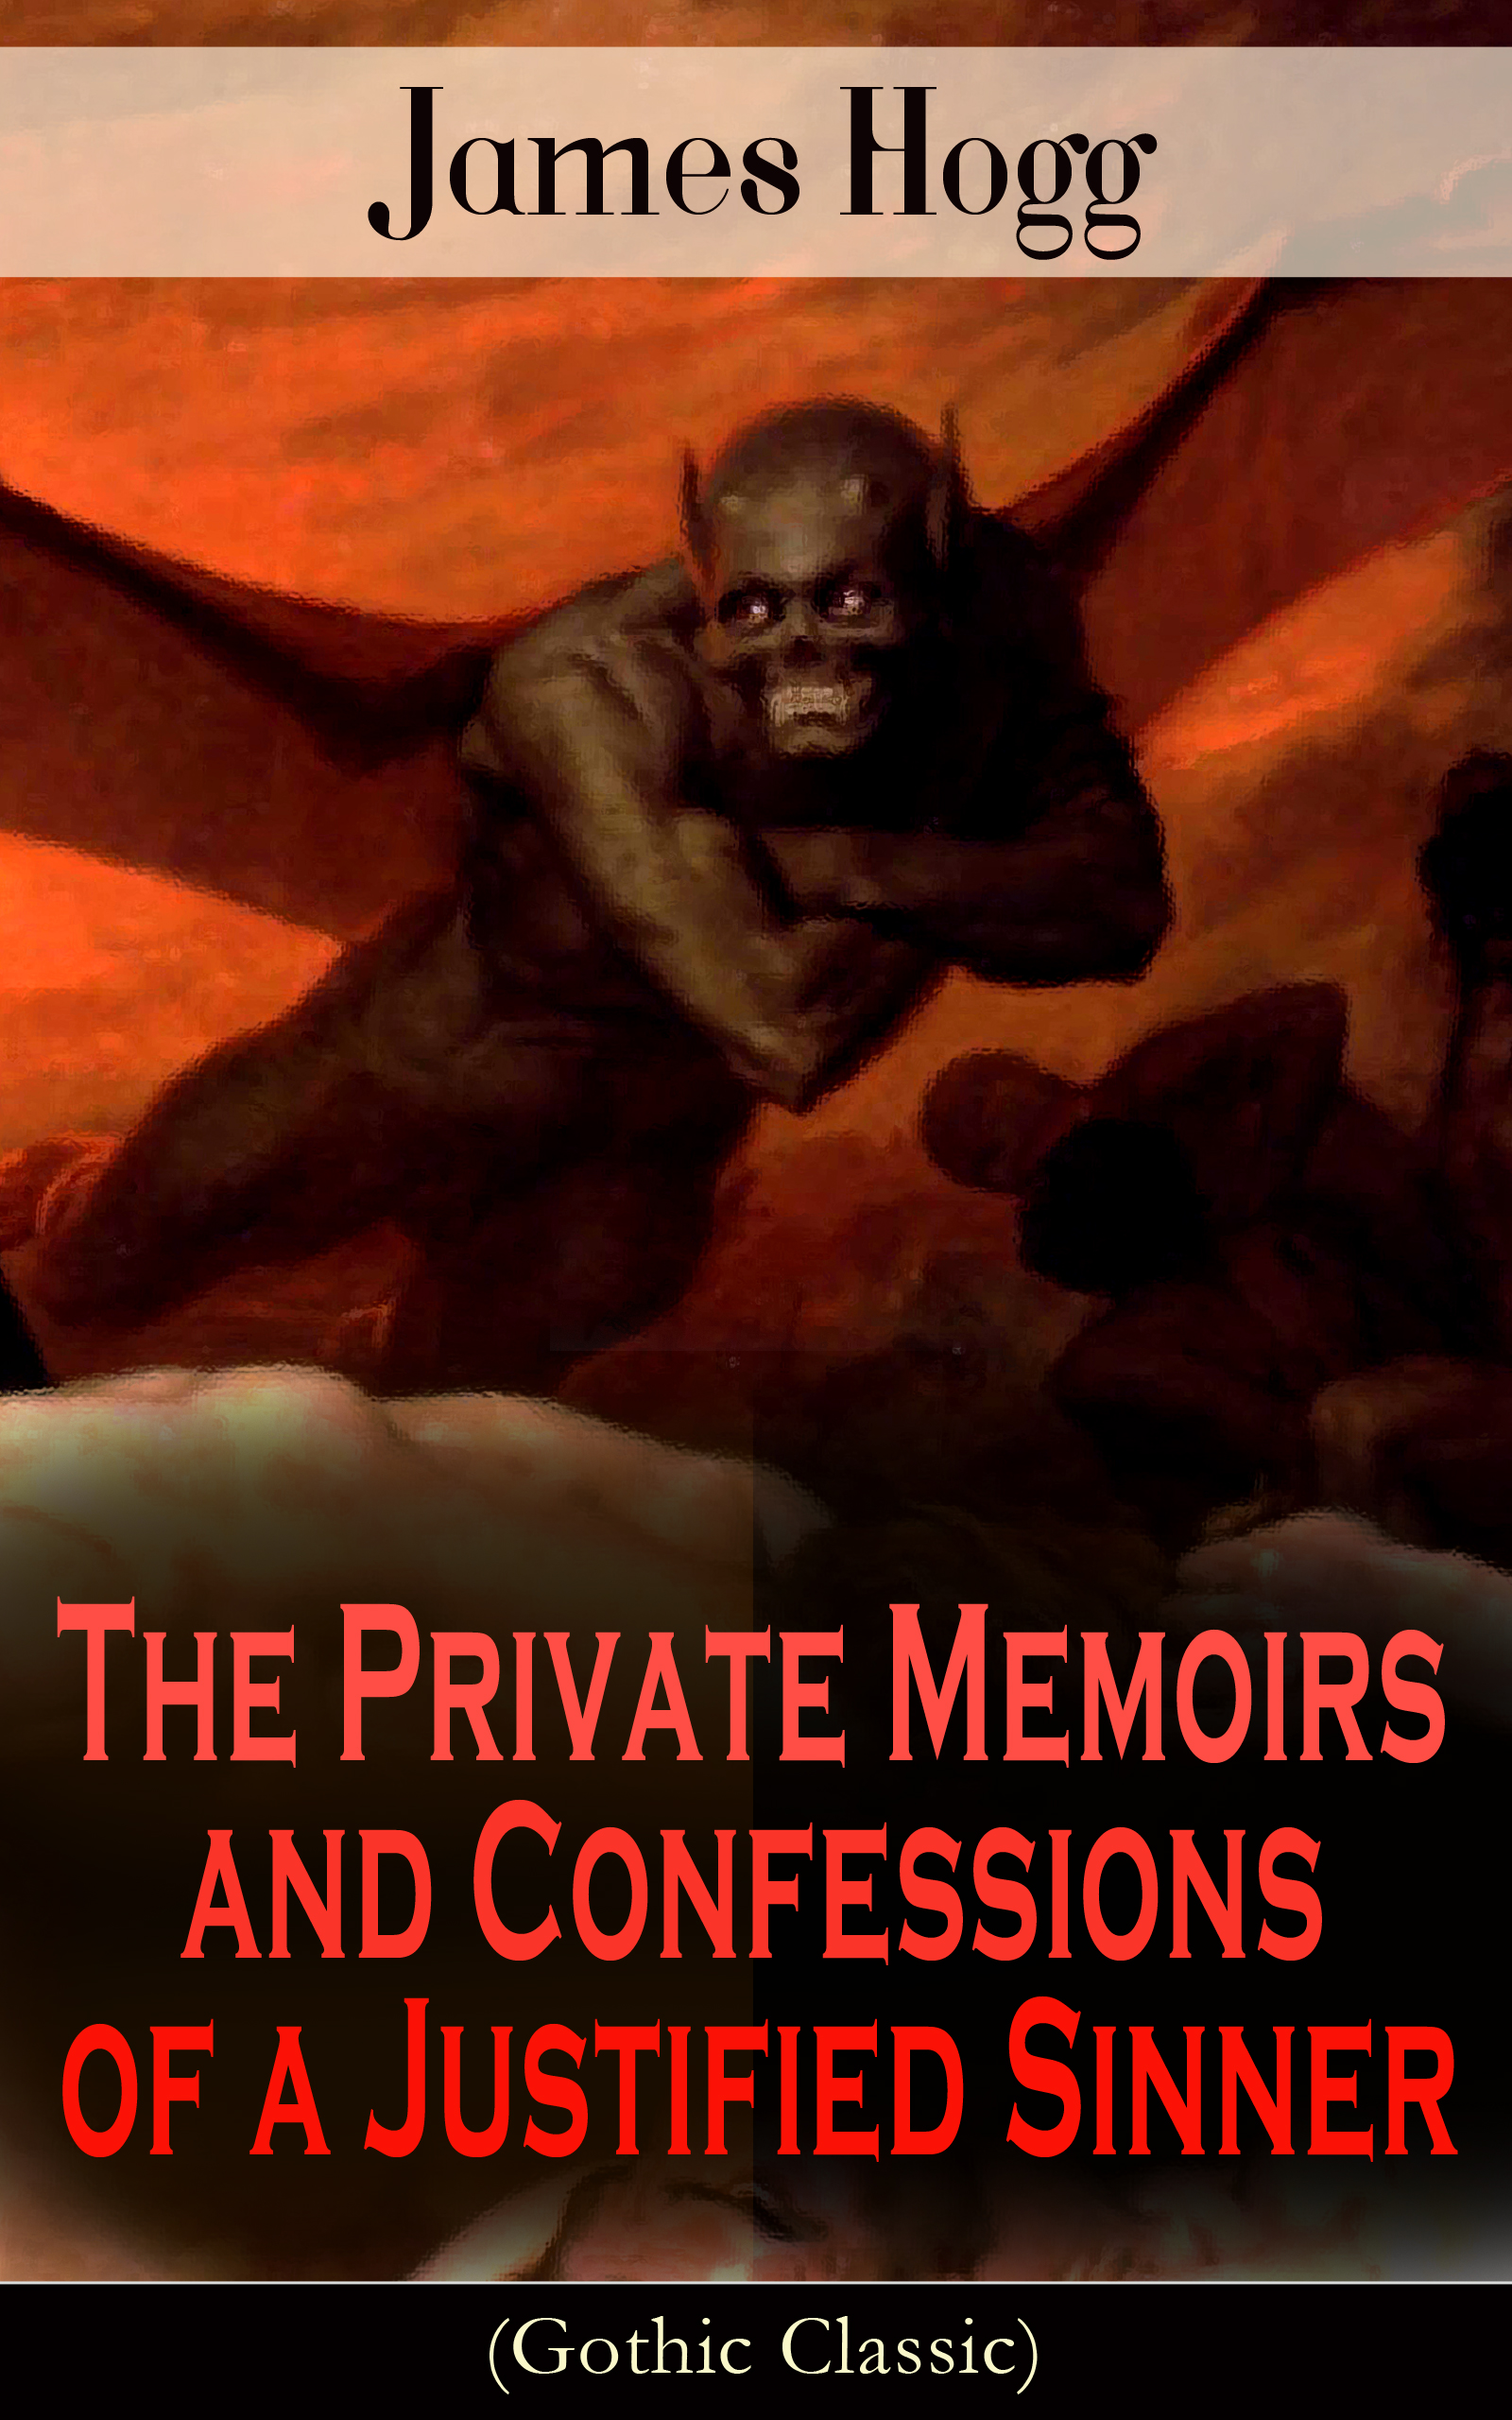 James Hogg The Private Memoirs and Confessions of a Justified Sinner (Gothic Classic) antwan kirk ramblings of a sinner